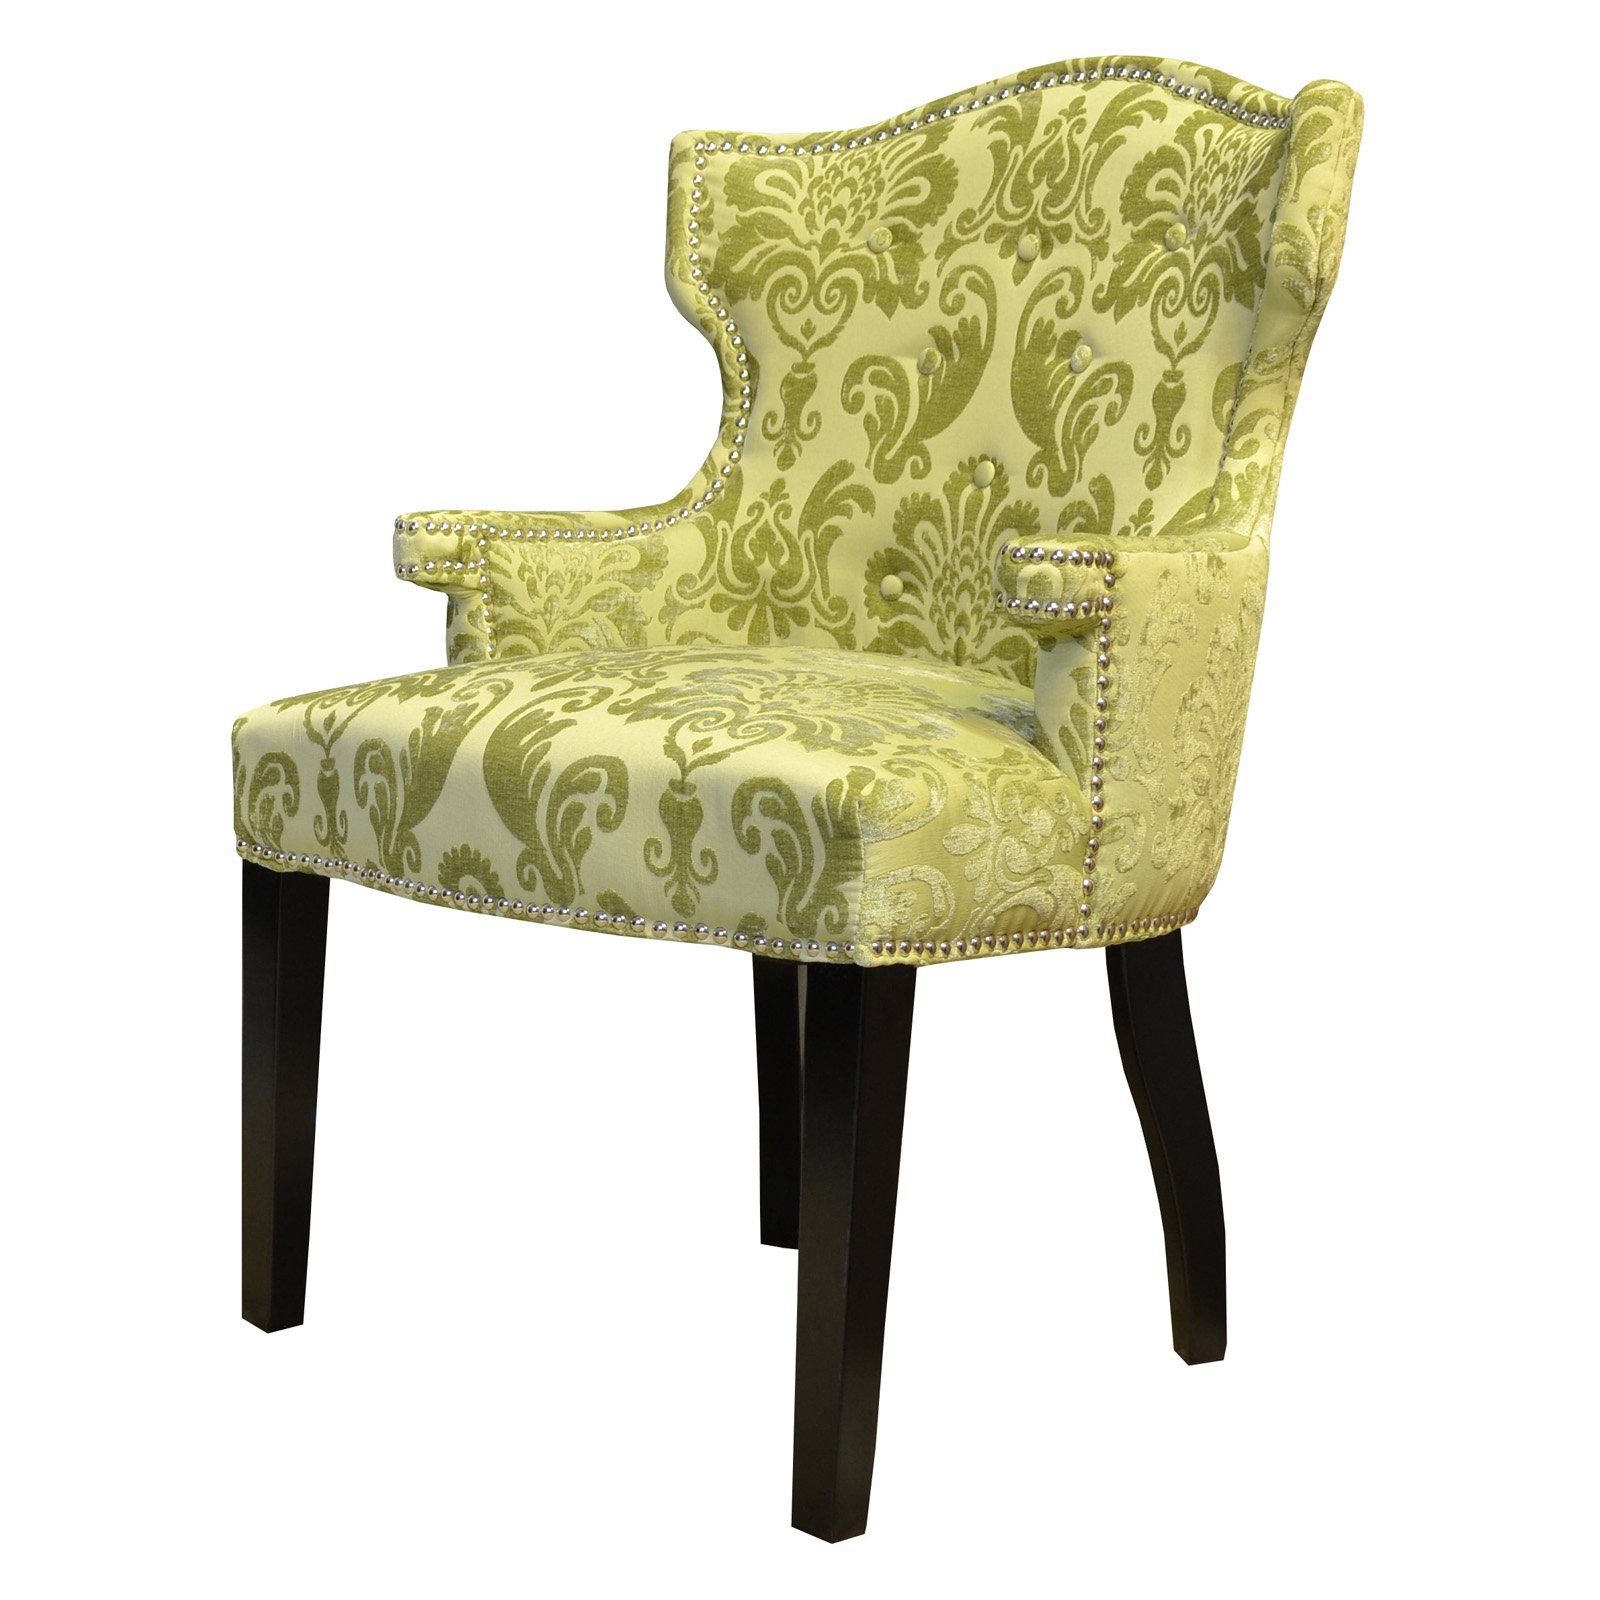 Hd Couture Brittania Fan Damask Chair From Hayneedle Com Accent Chairs Wingback Chair Furniture